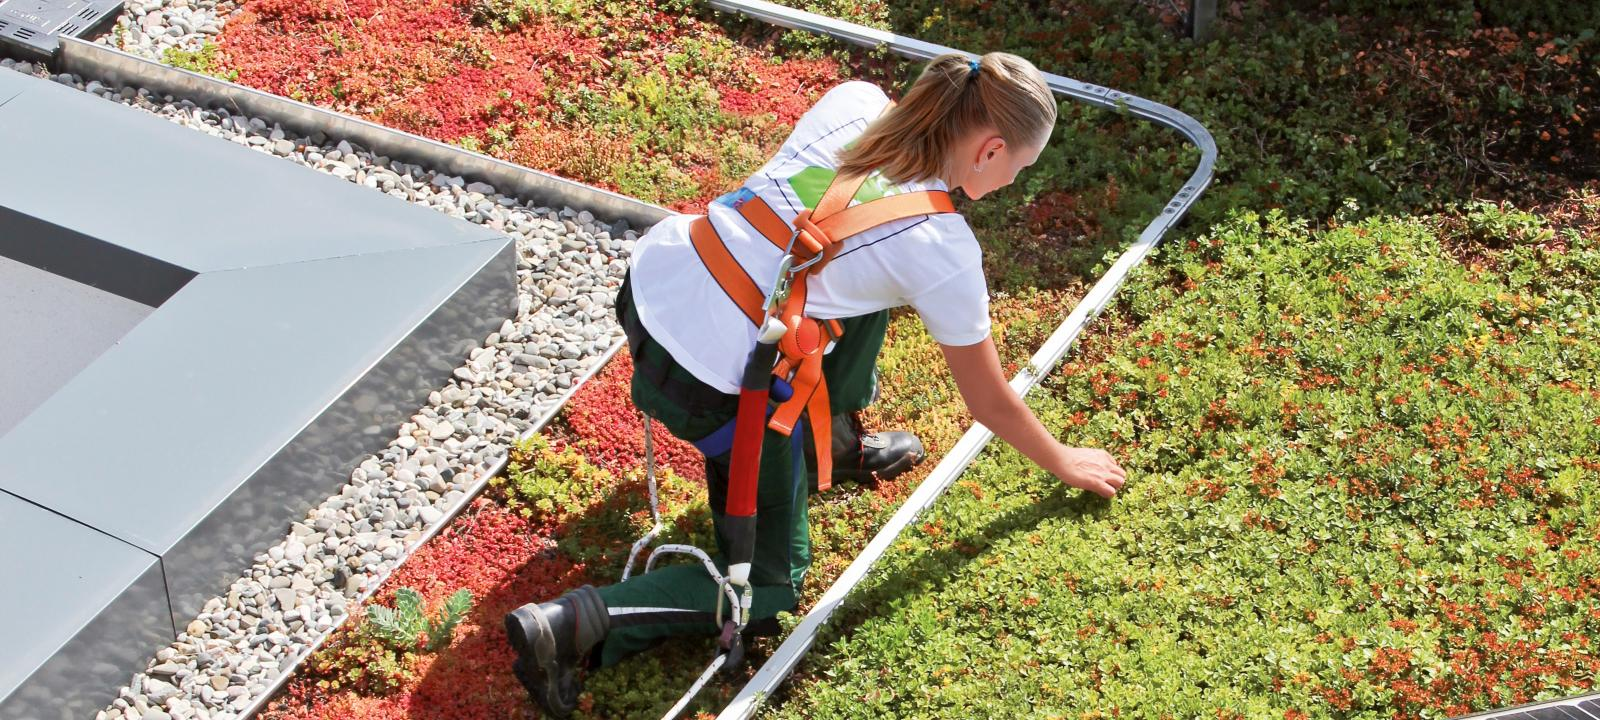 Gardener with fall protection working on a green roof